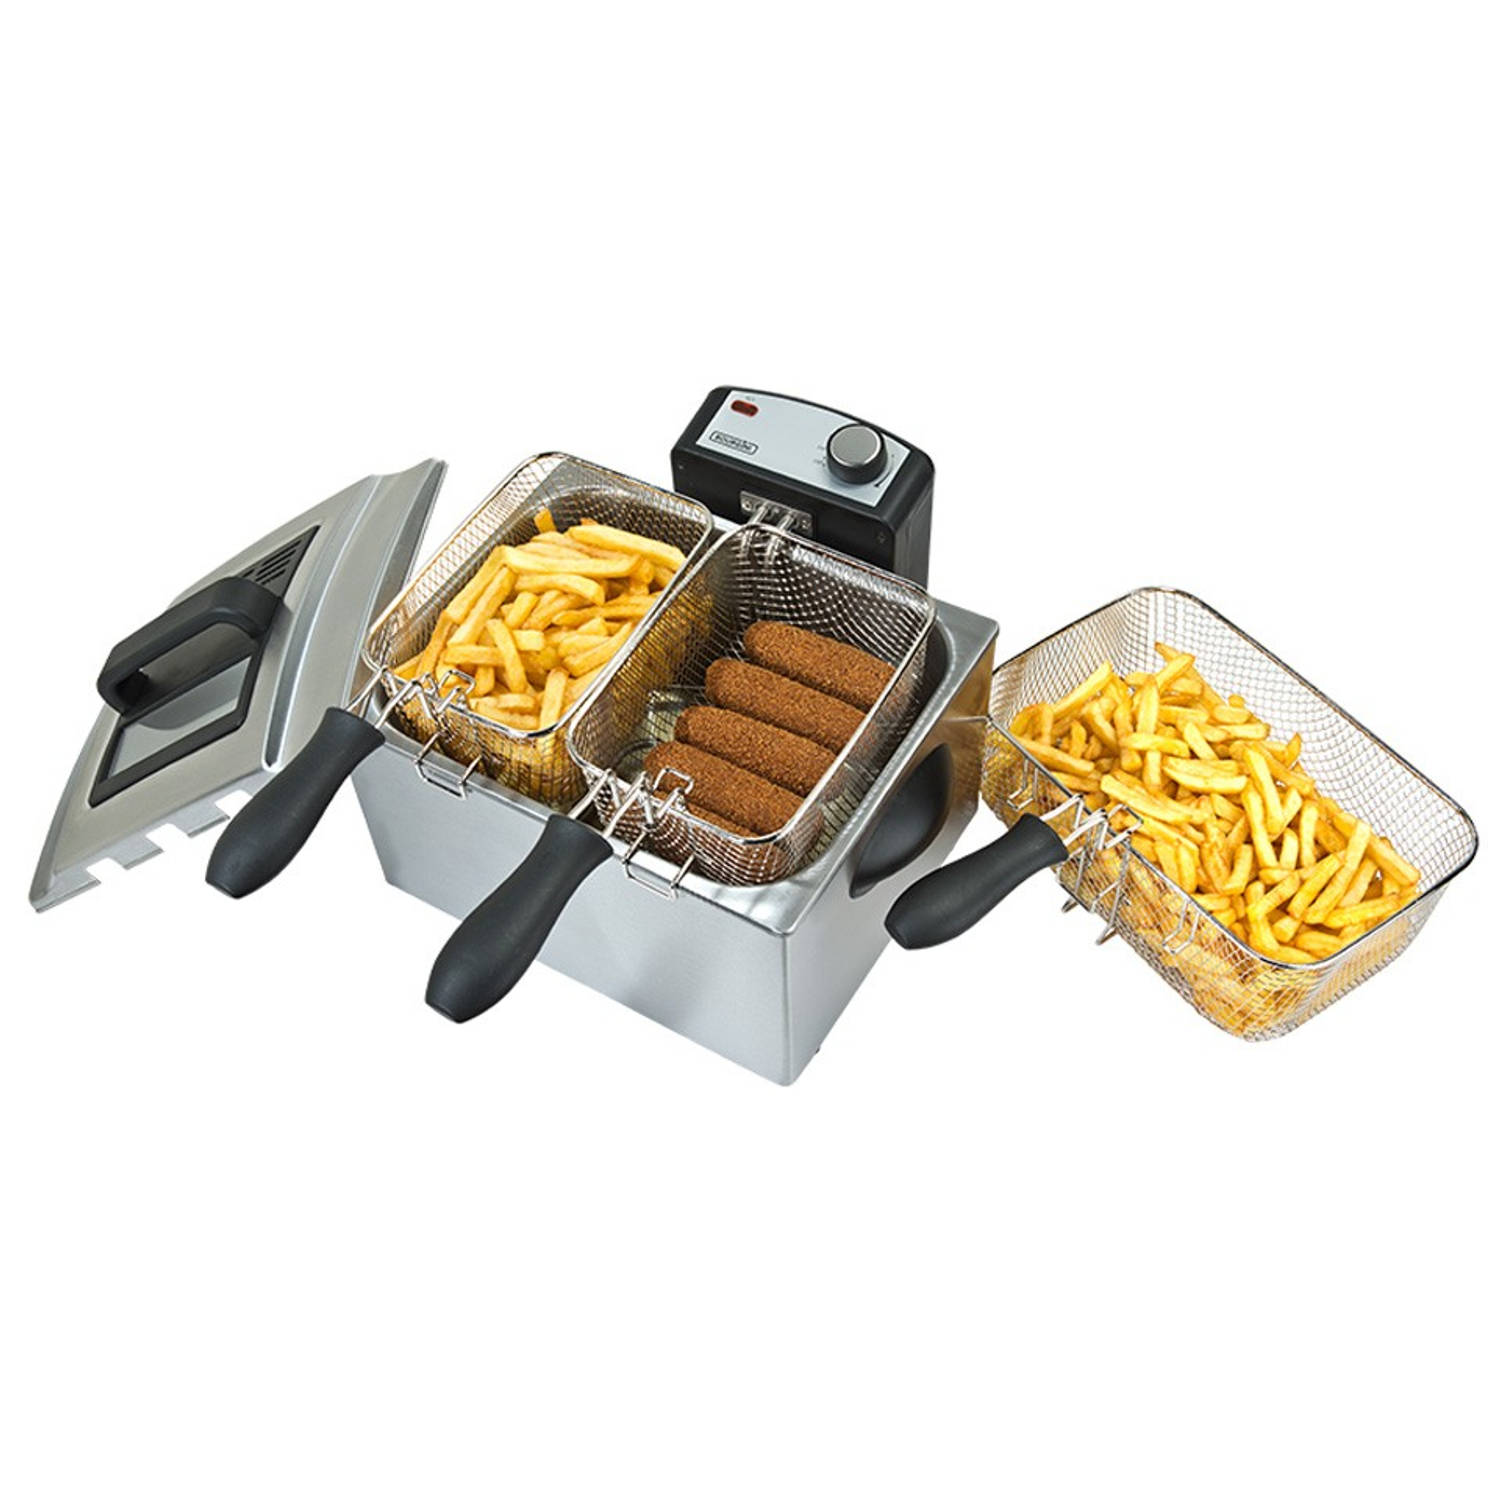 Korting Bourgini Classic Triple Deep Fryer friteuse 5.0L 18.2050